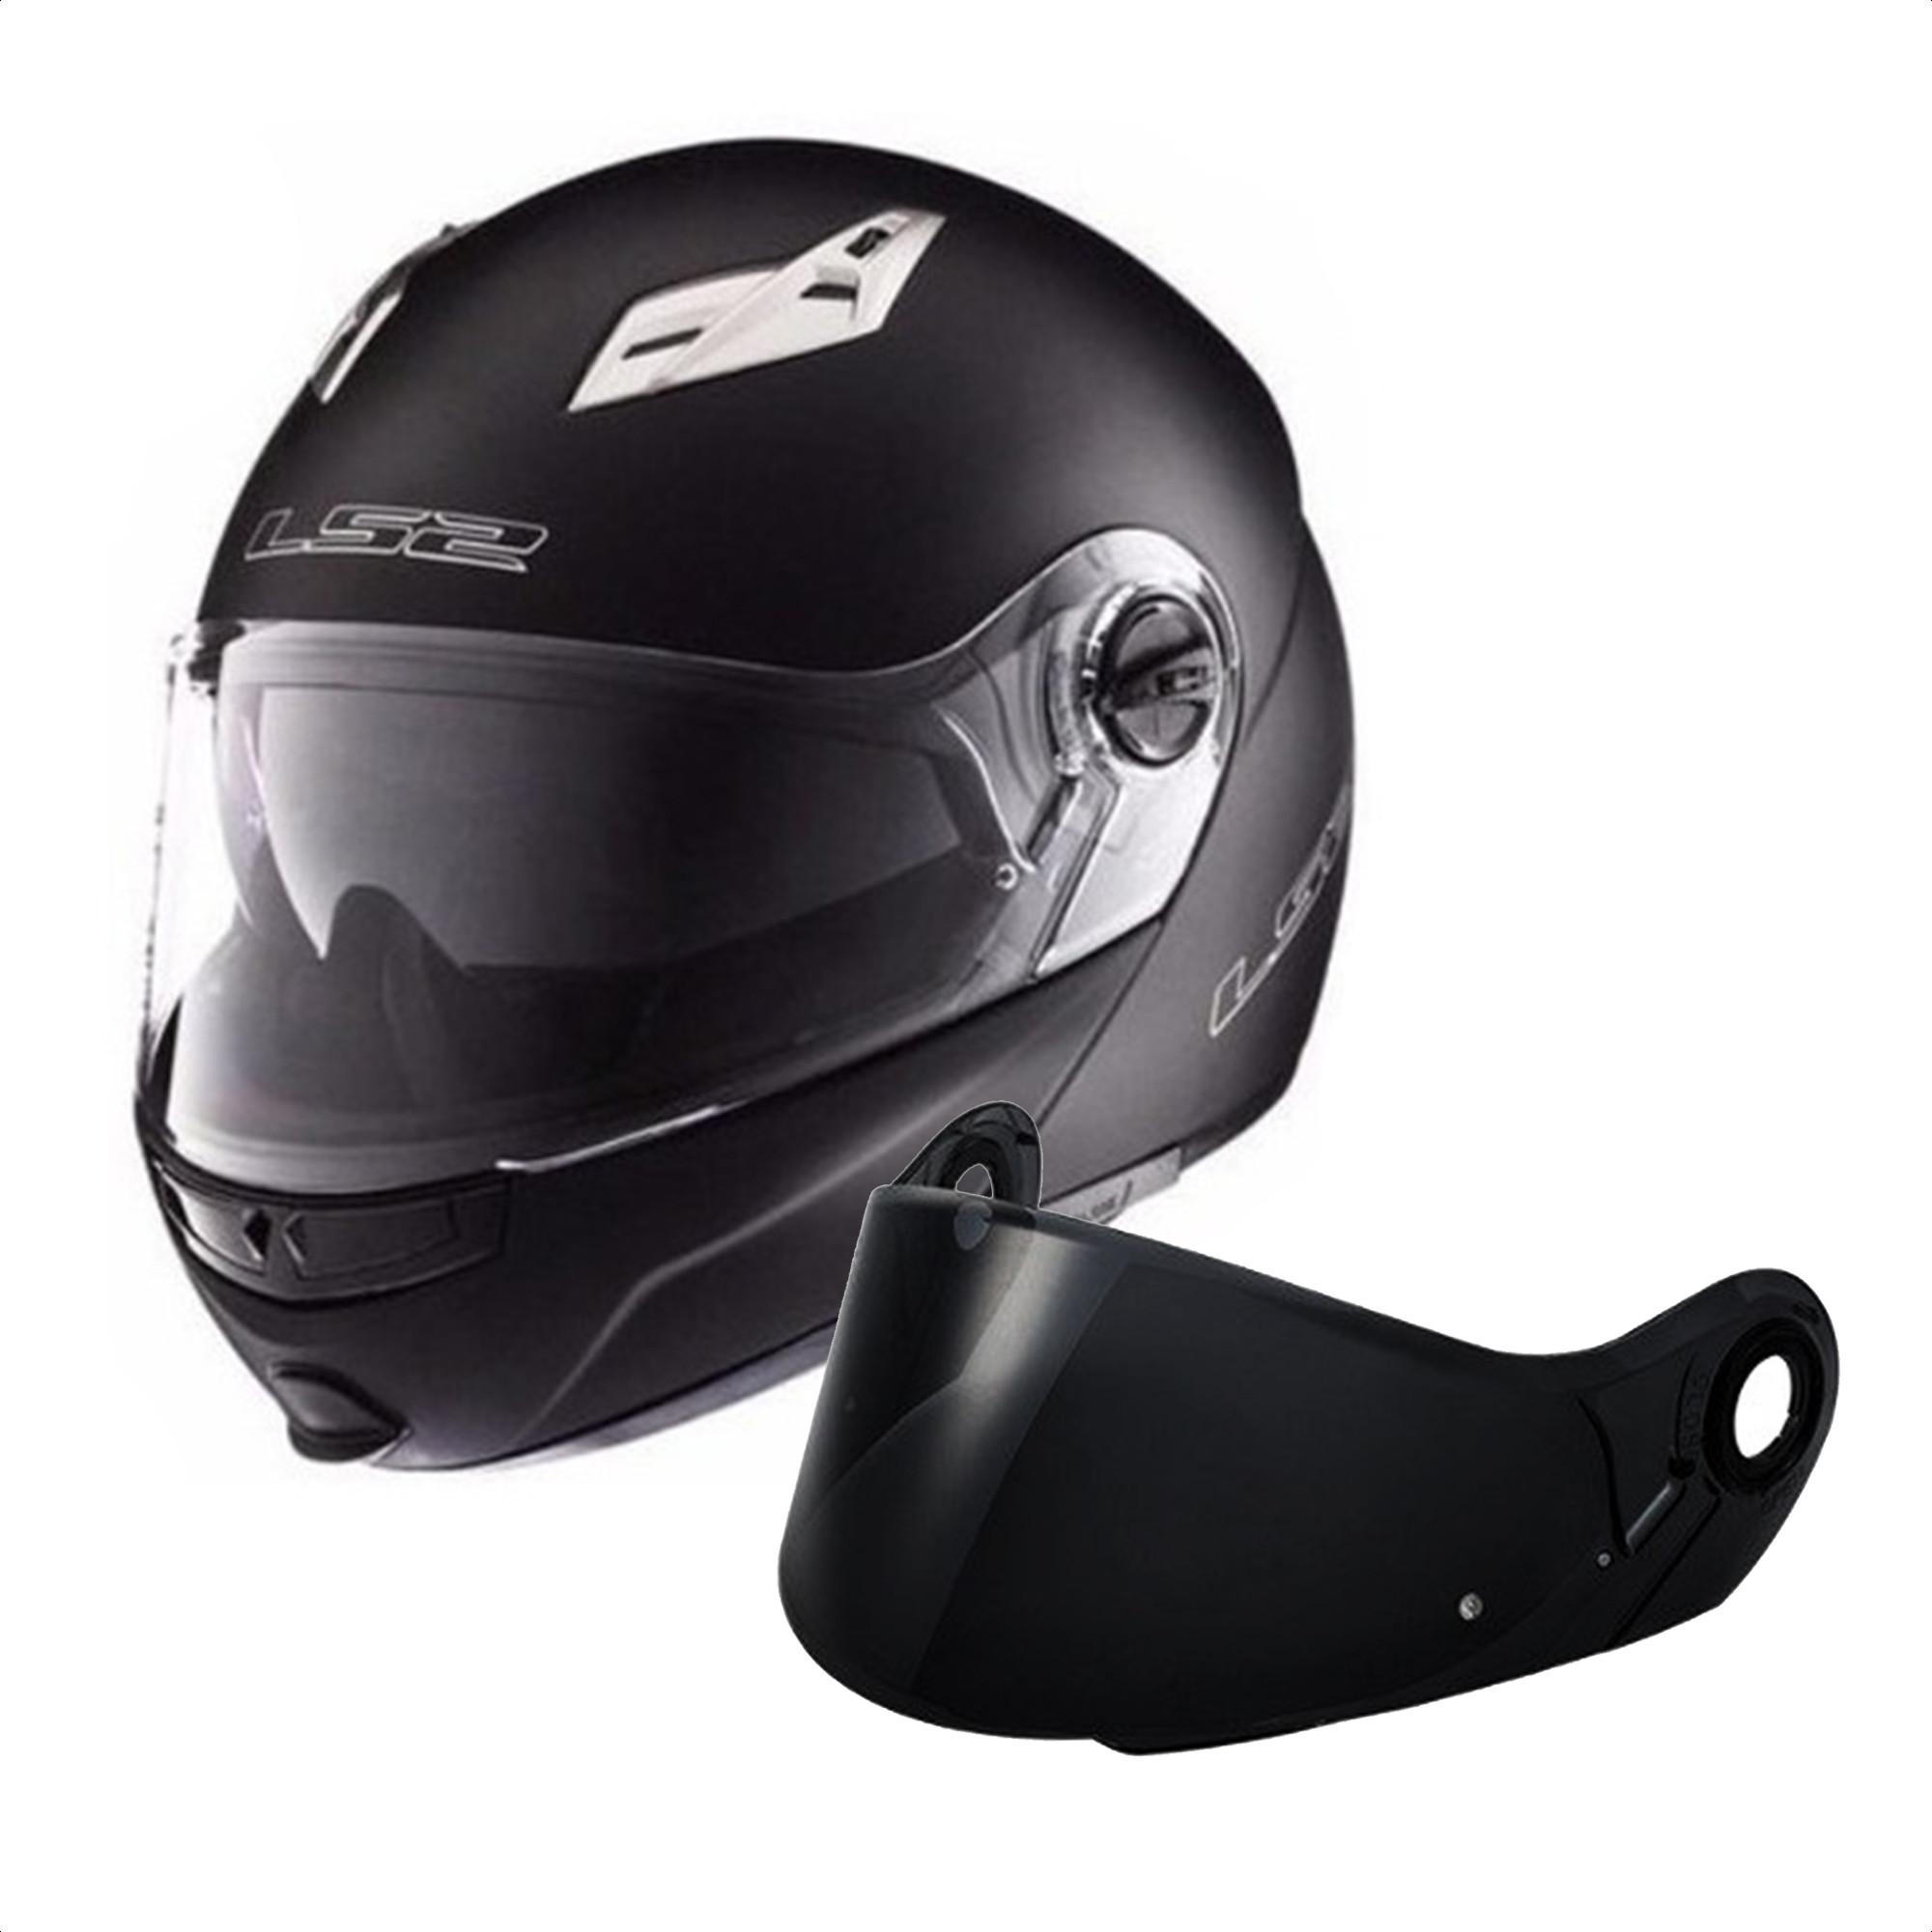 Casco  Rebatible Ls2 Ff 370 Easy Negro + Visor De Regalo